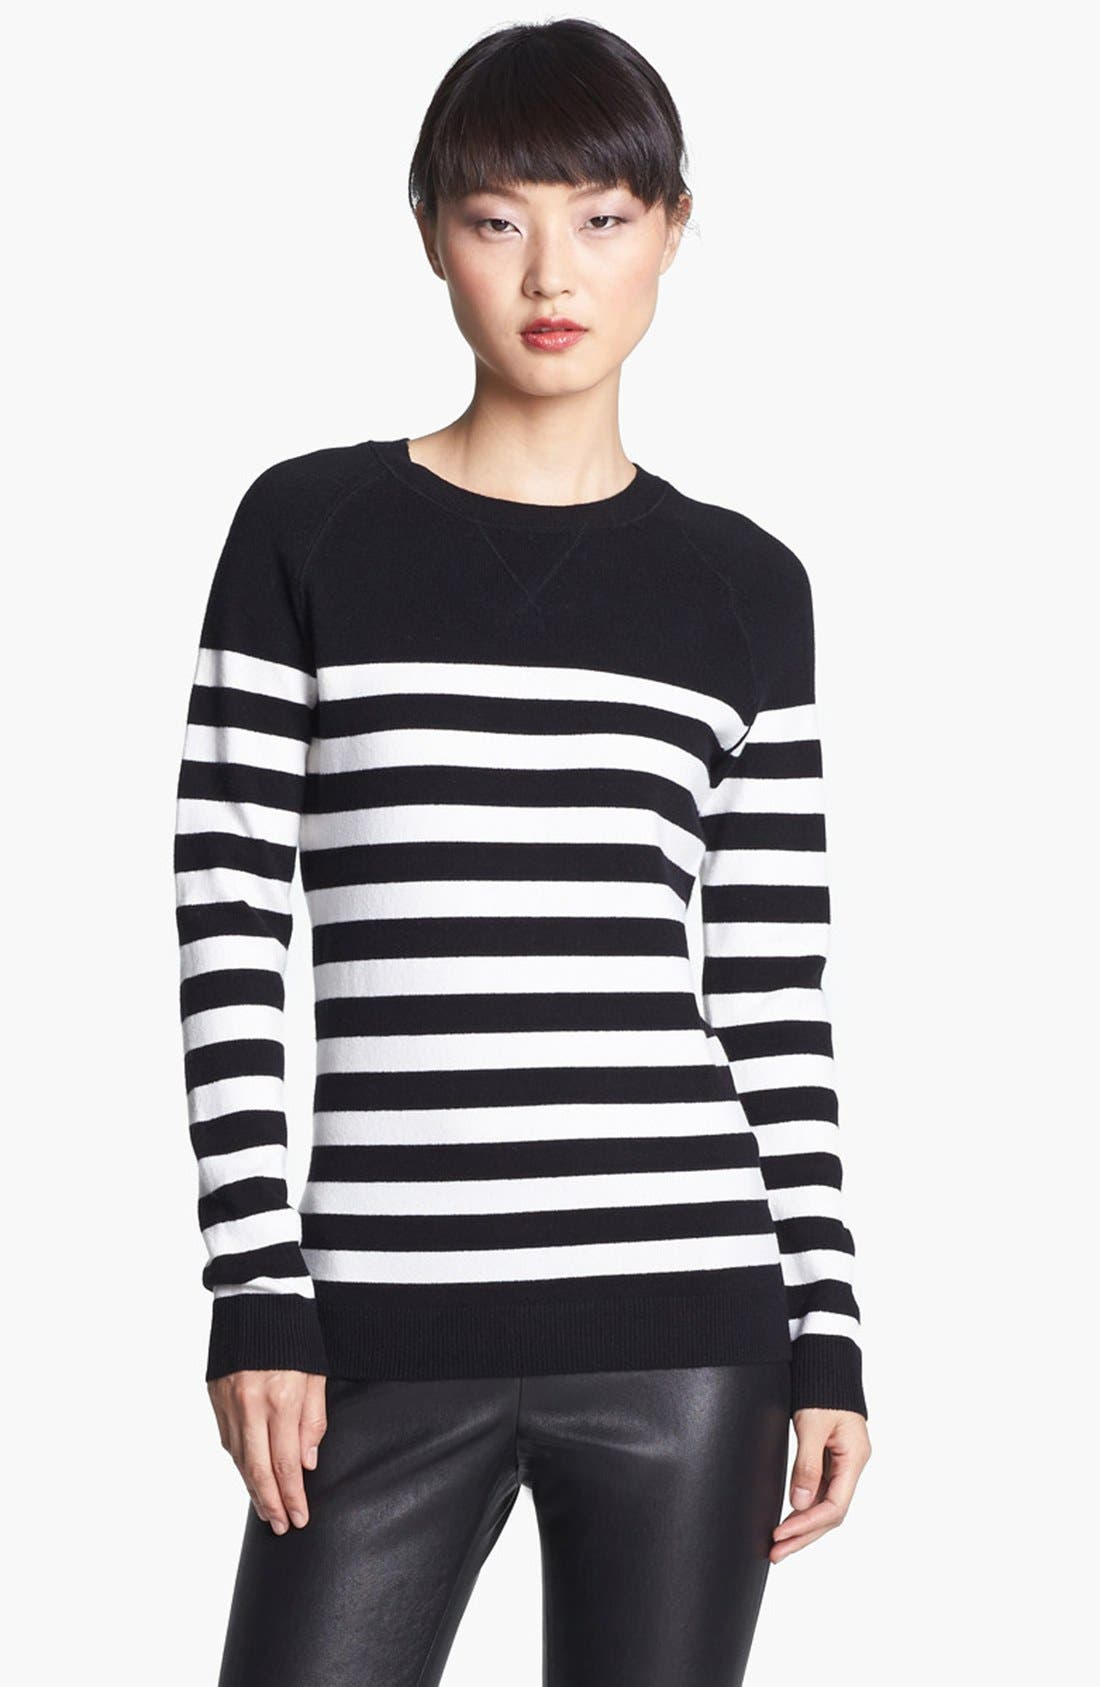 Alternate Image 1 Selected - Miss Wu 'Zucca' Stripe Cashmere Blend Sweater (Nordstrom Exclusive)